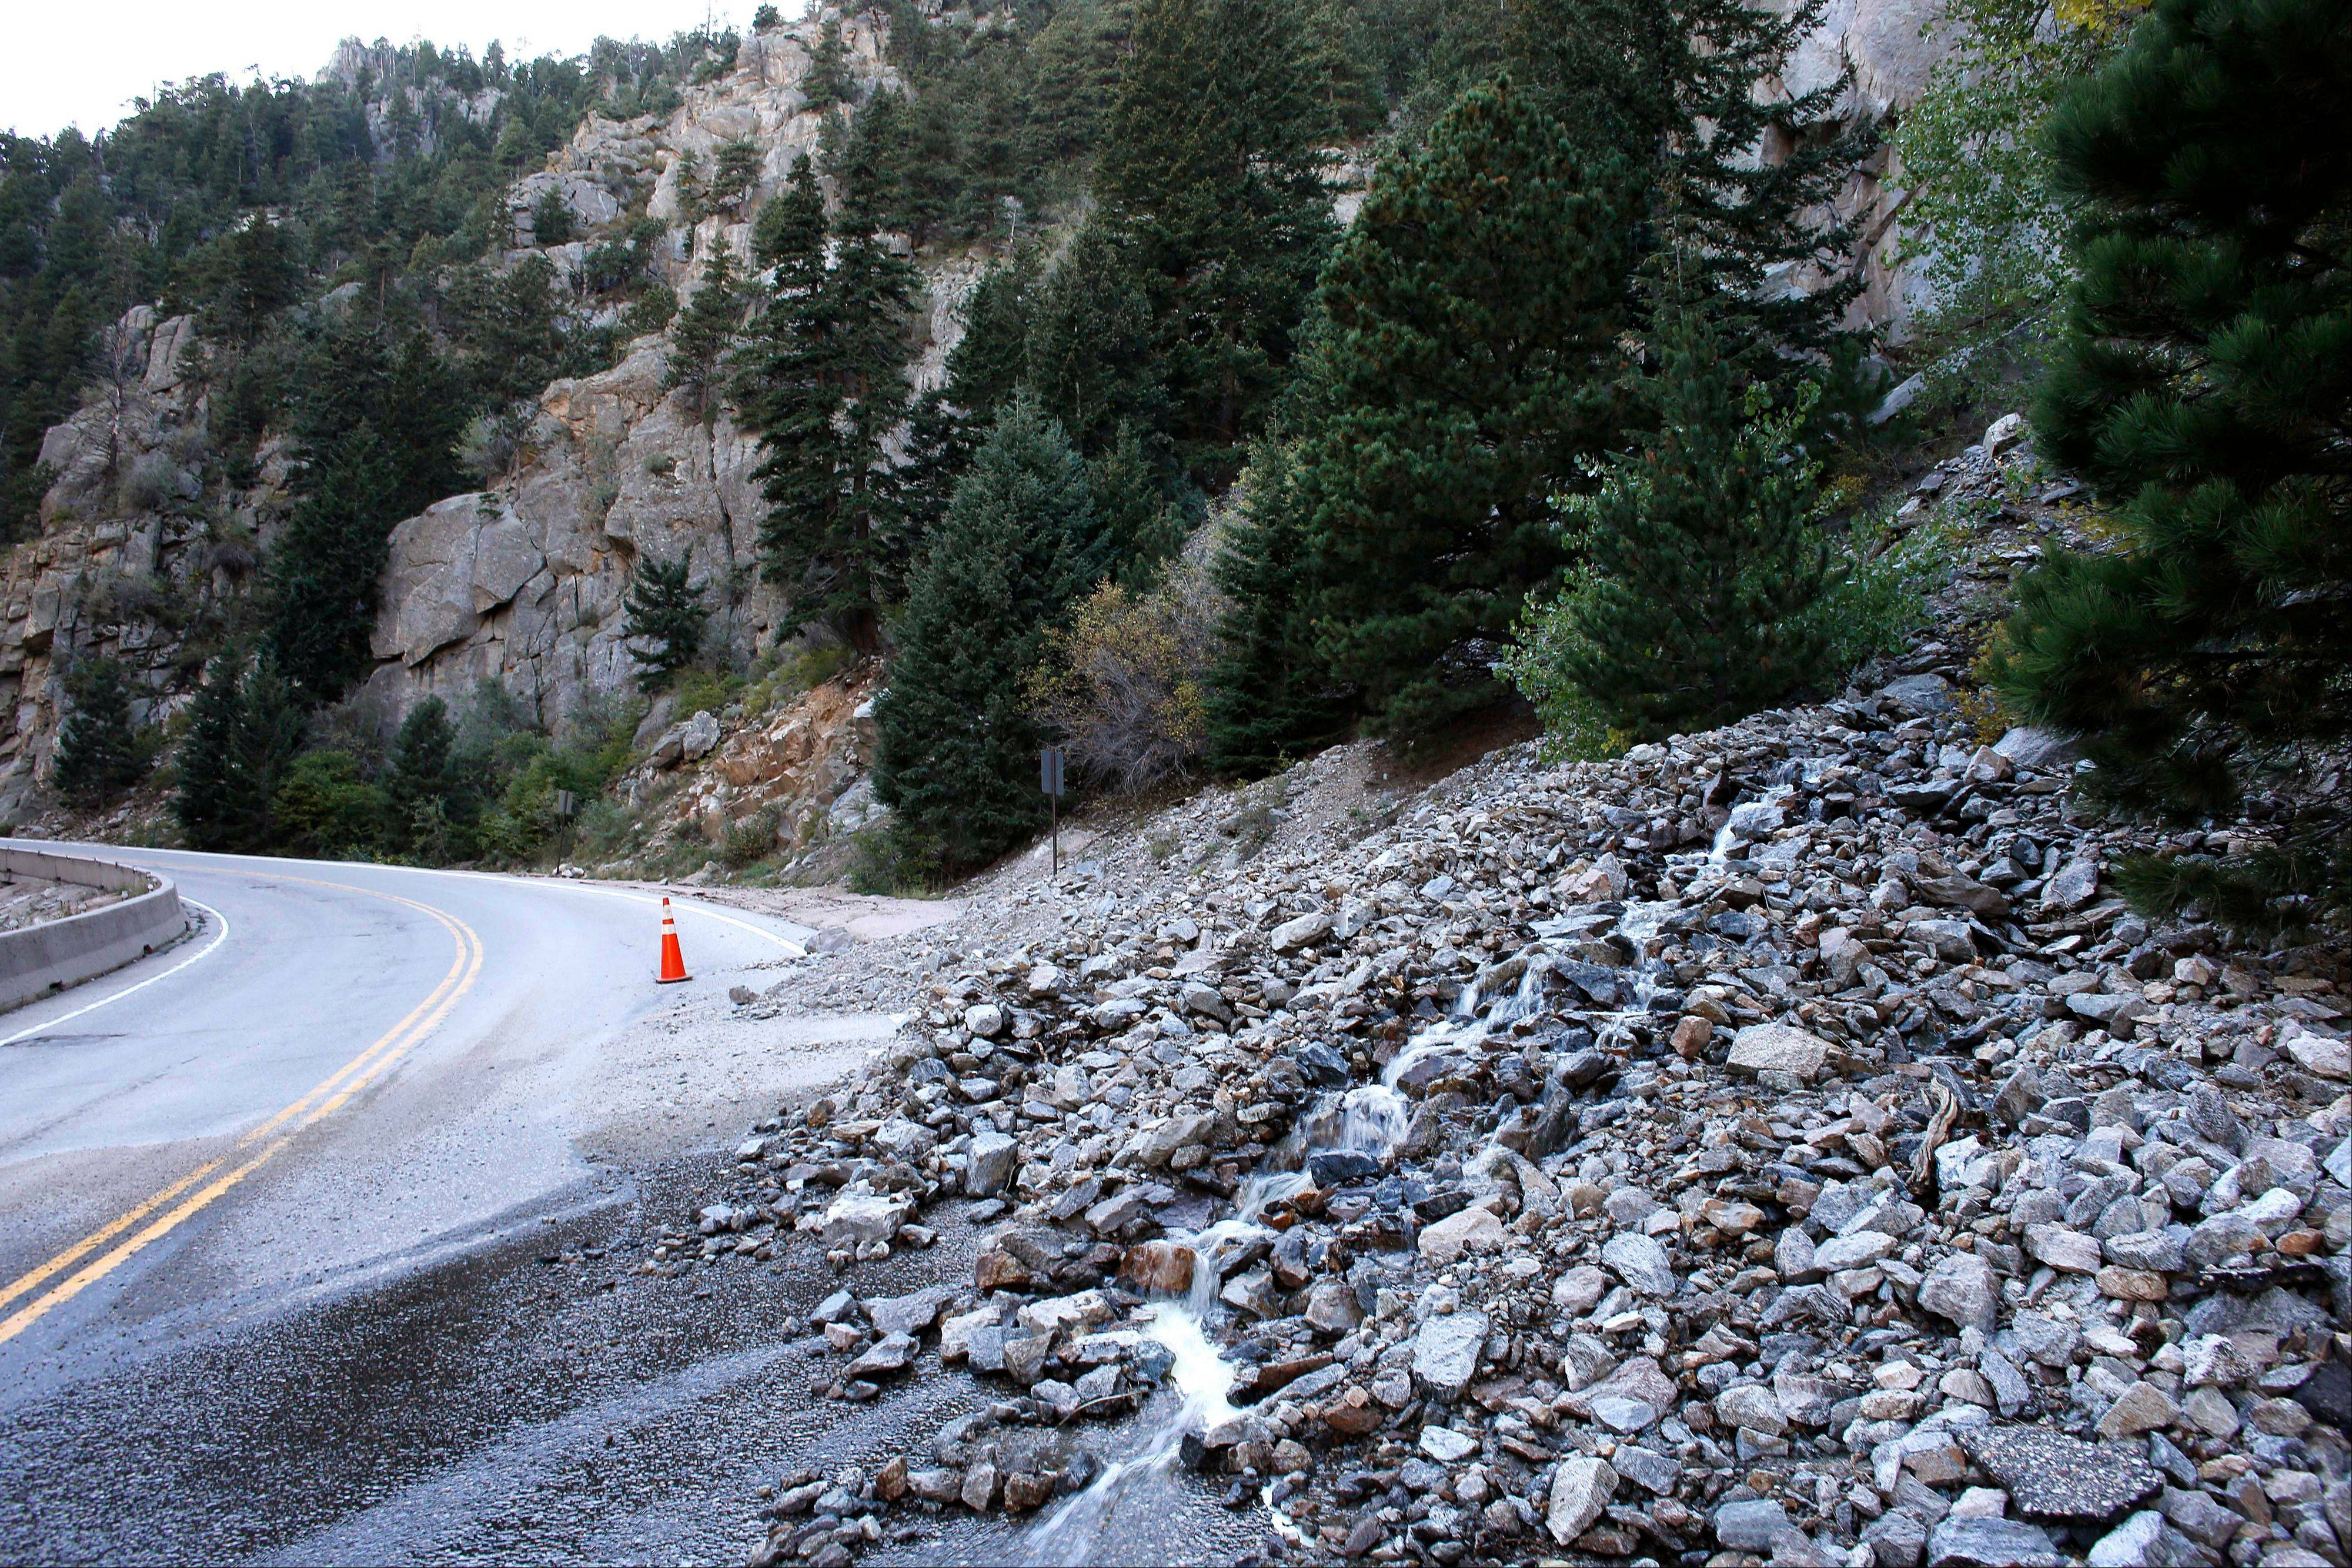 A rock slide partially blocks a closed canyon road, which links Boulder with the mountain town of Nederland.